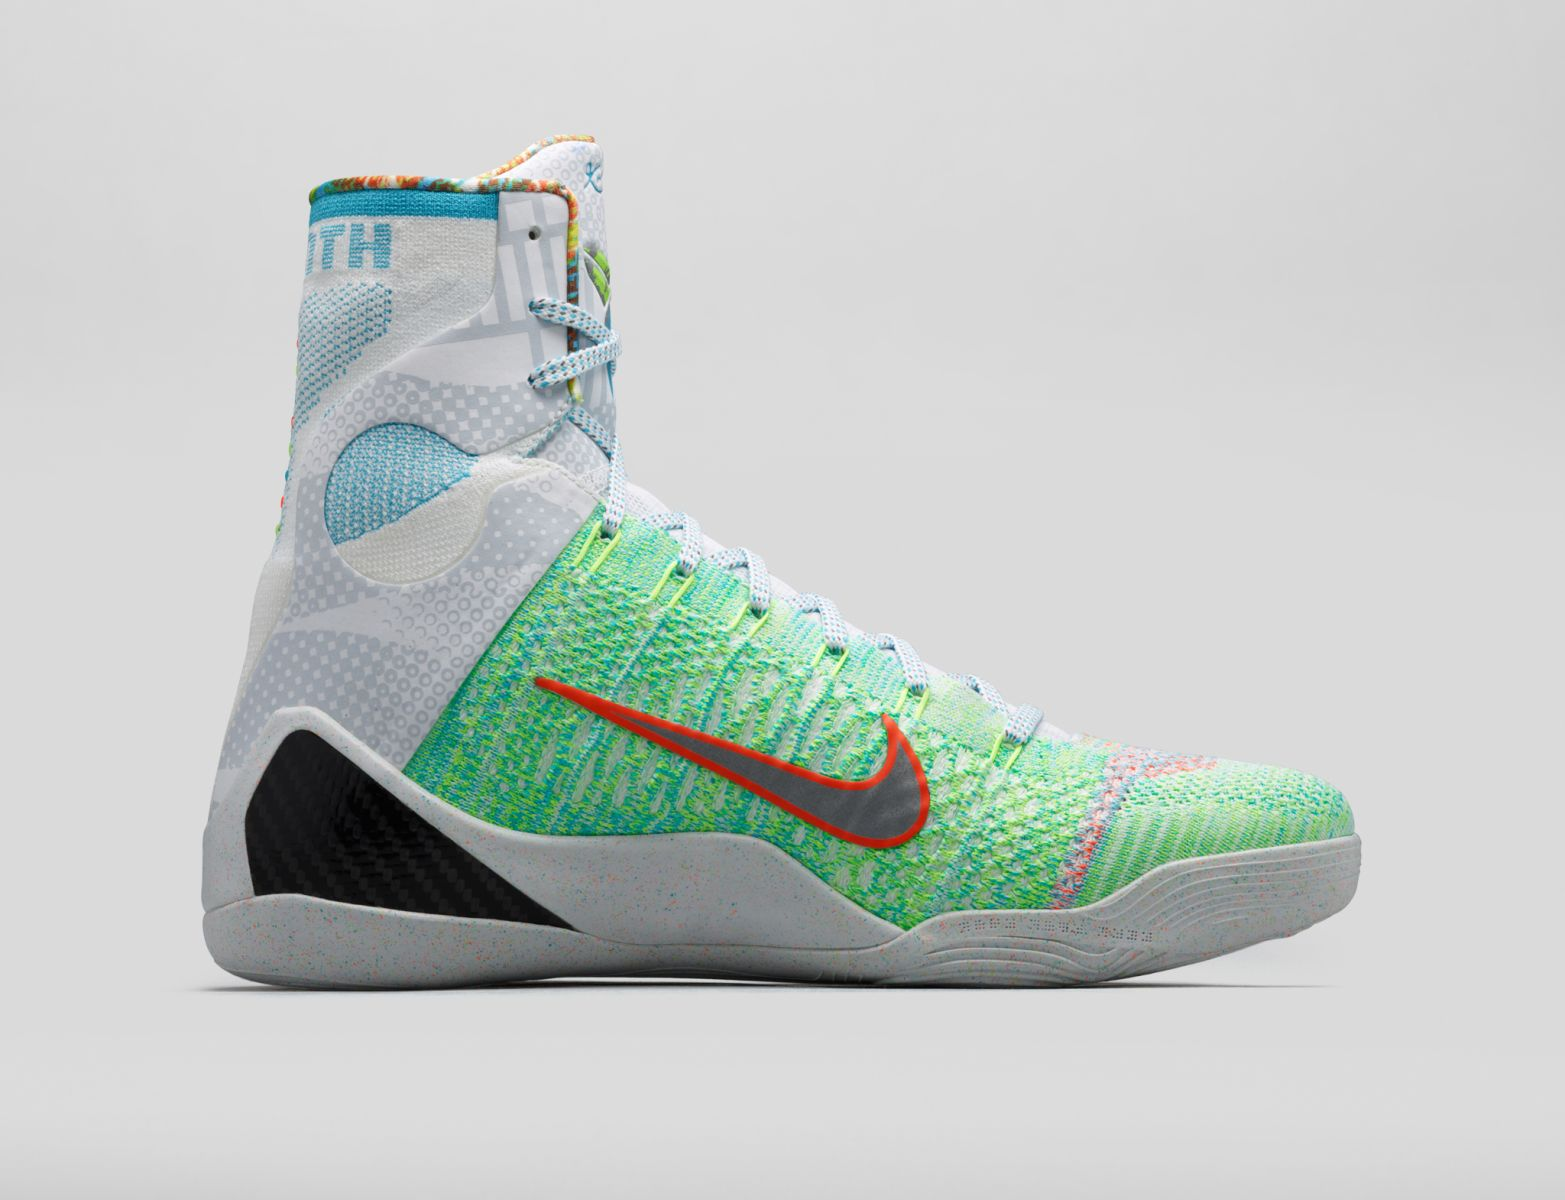 separation shoes f33f3 6aa54 kobe 9 high top shoes